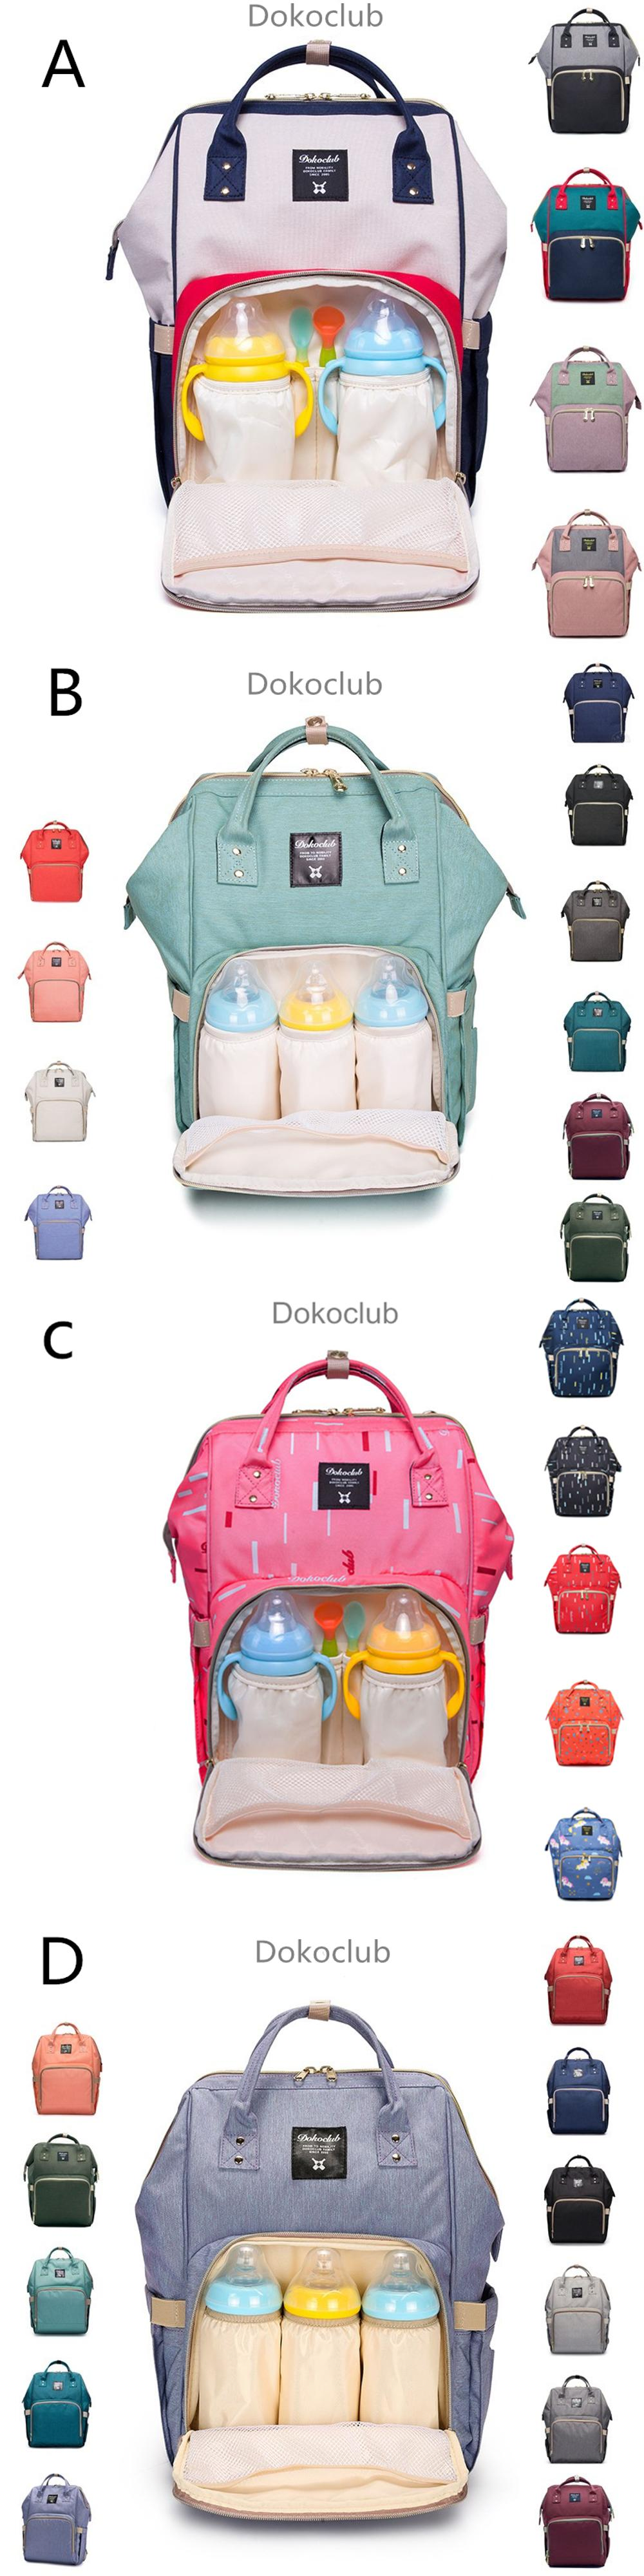 2017 Cheap Diaper Bag/Baby Diaper Bag/Backpack Baby Diaper Bag